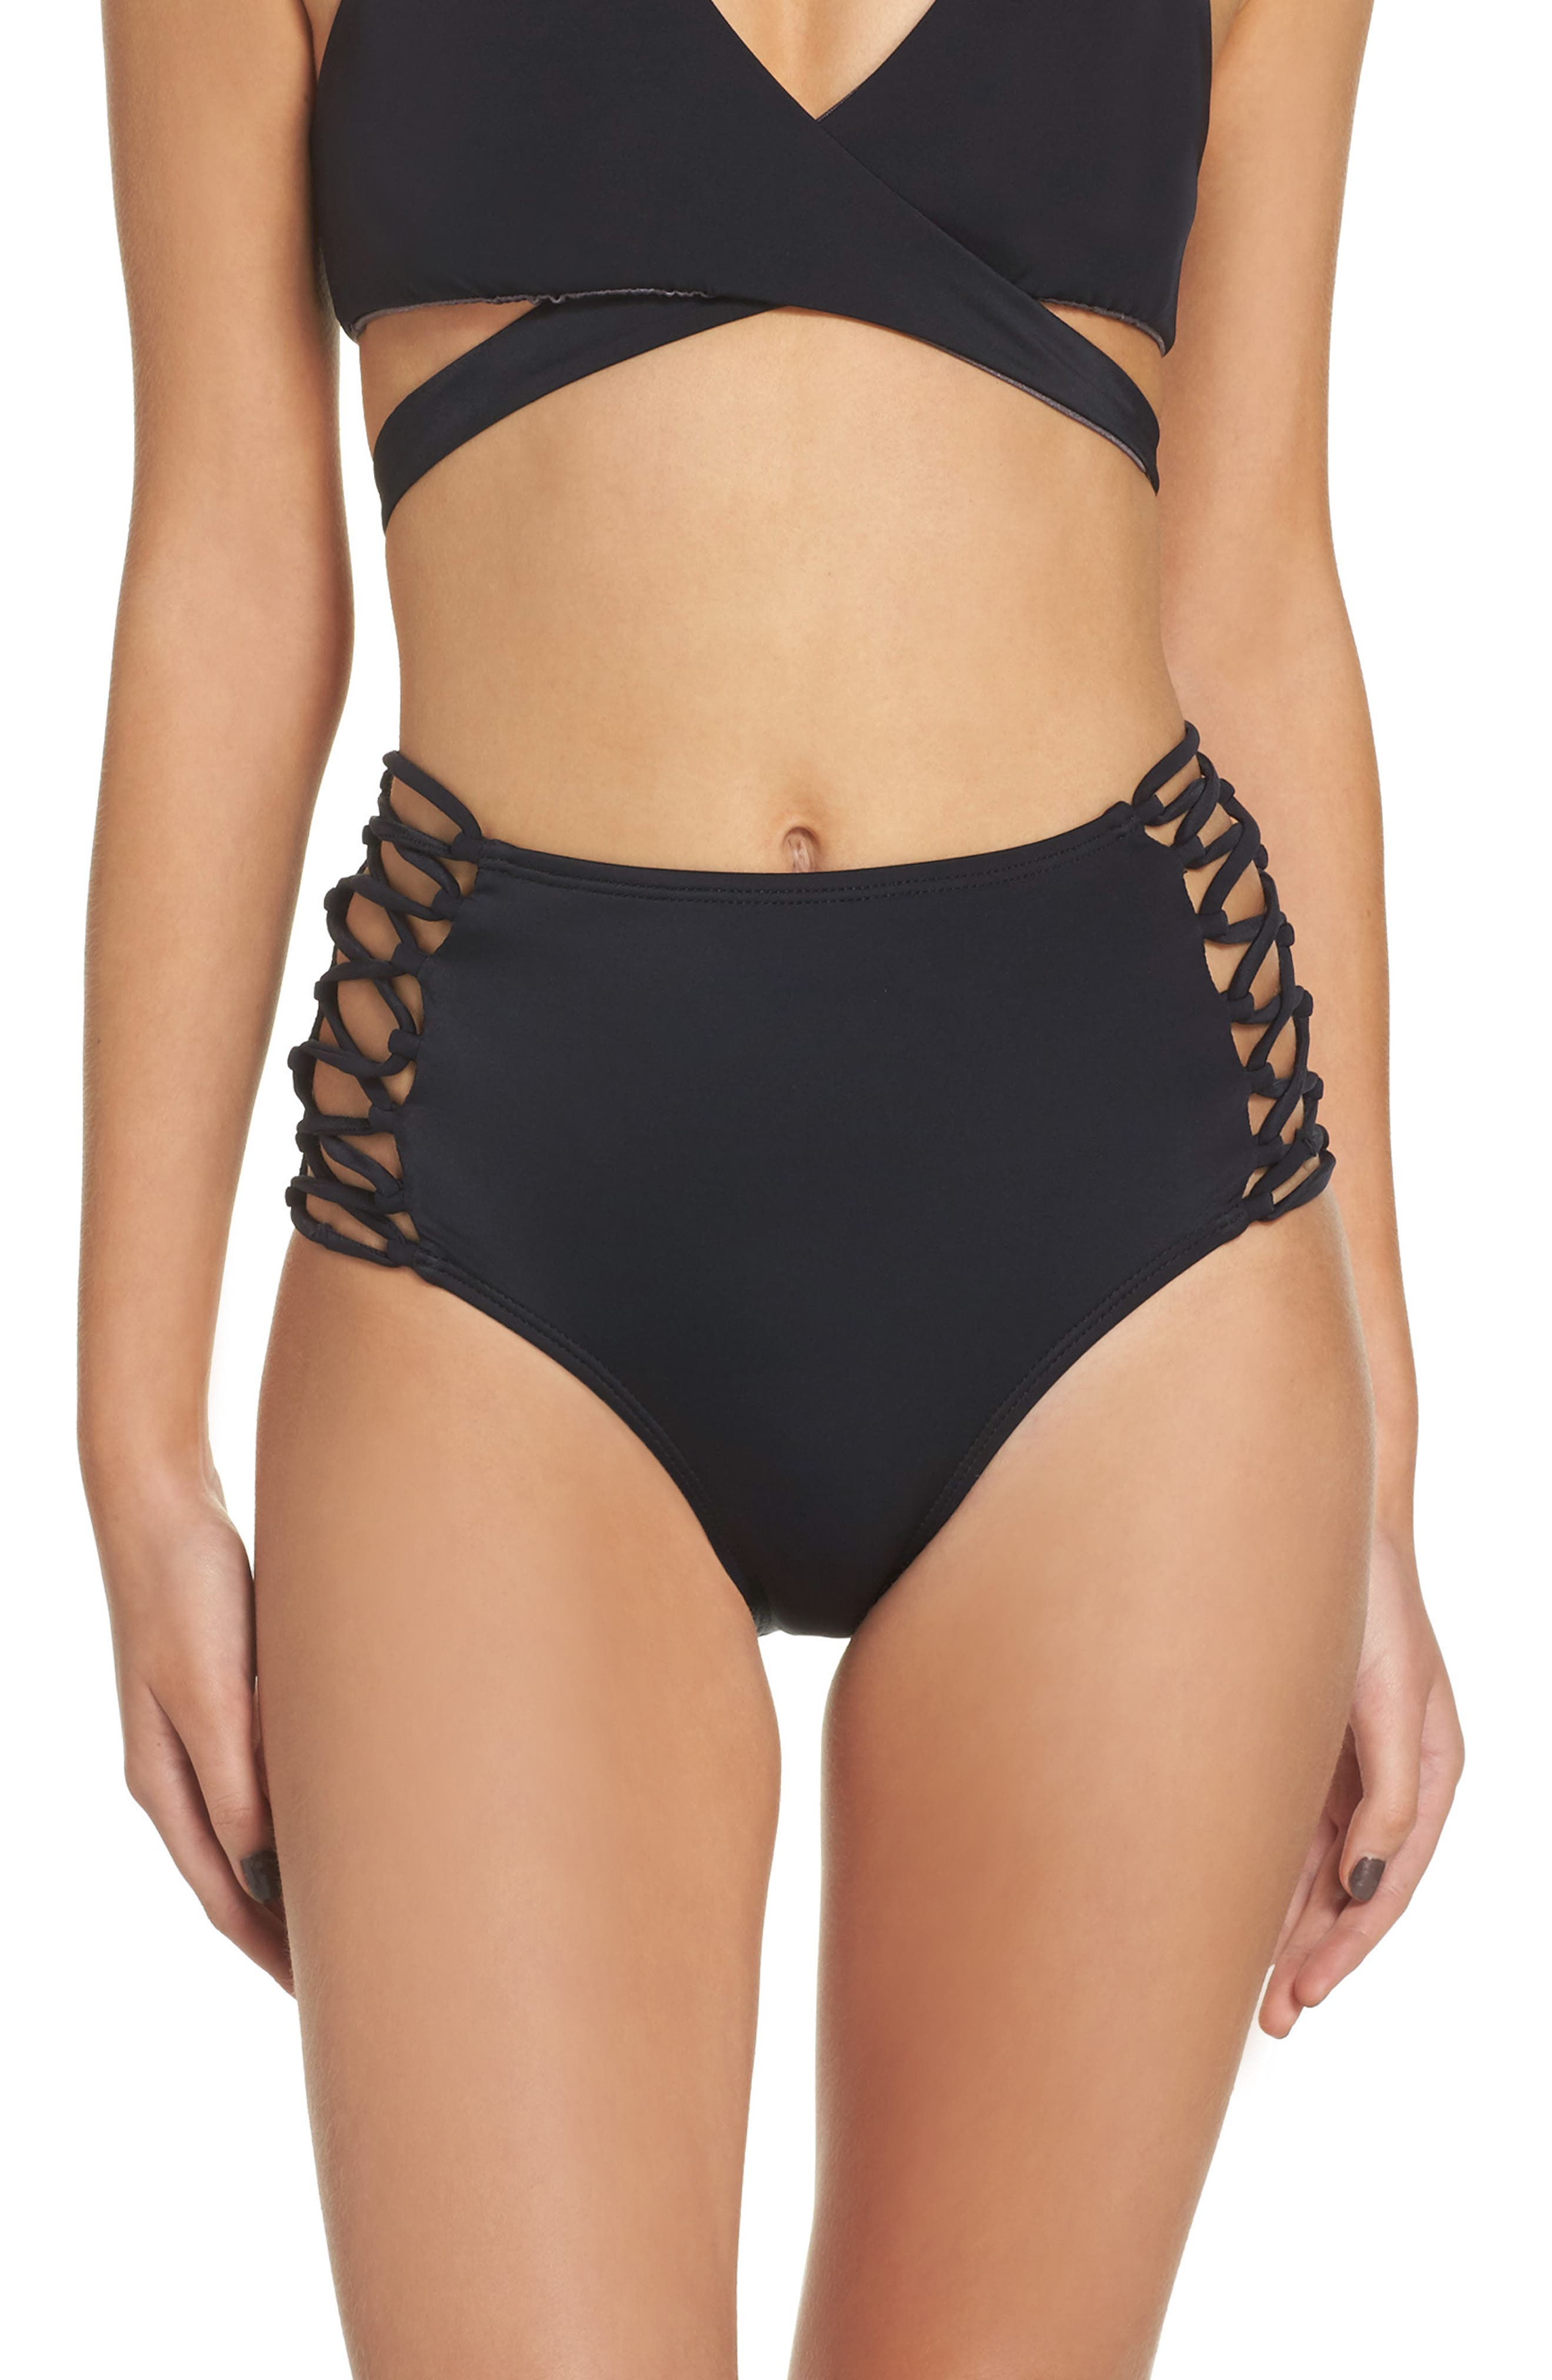 These high-waisted black bottoms have cute side details, but the top's keyhole neckline is the main reason for this suit's sex appeal. Advertisement - Continue Reading Below.